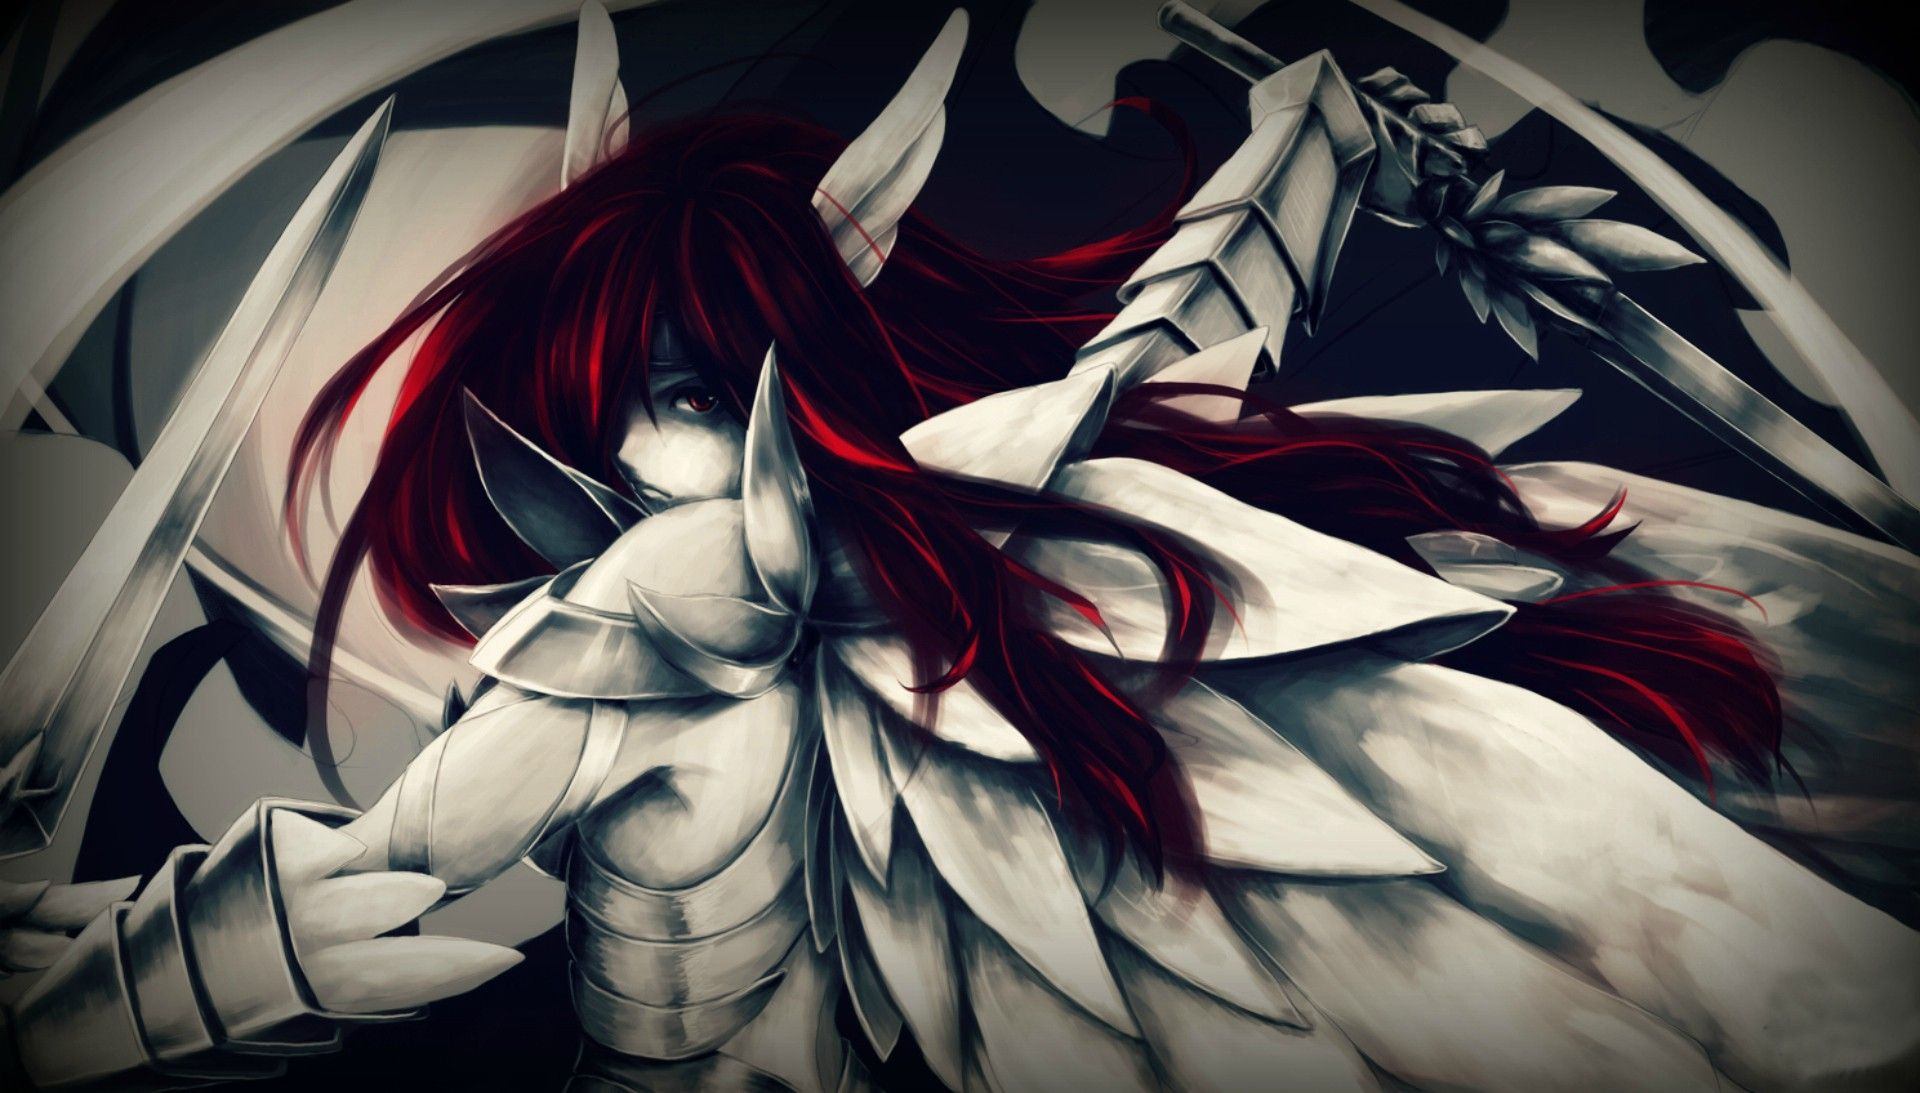 Pin by FrAnKlIn on ®€∆L!T!© Fairy tail erza scarlet